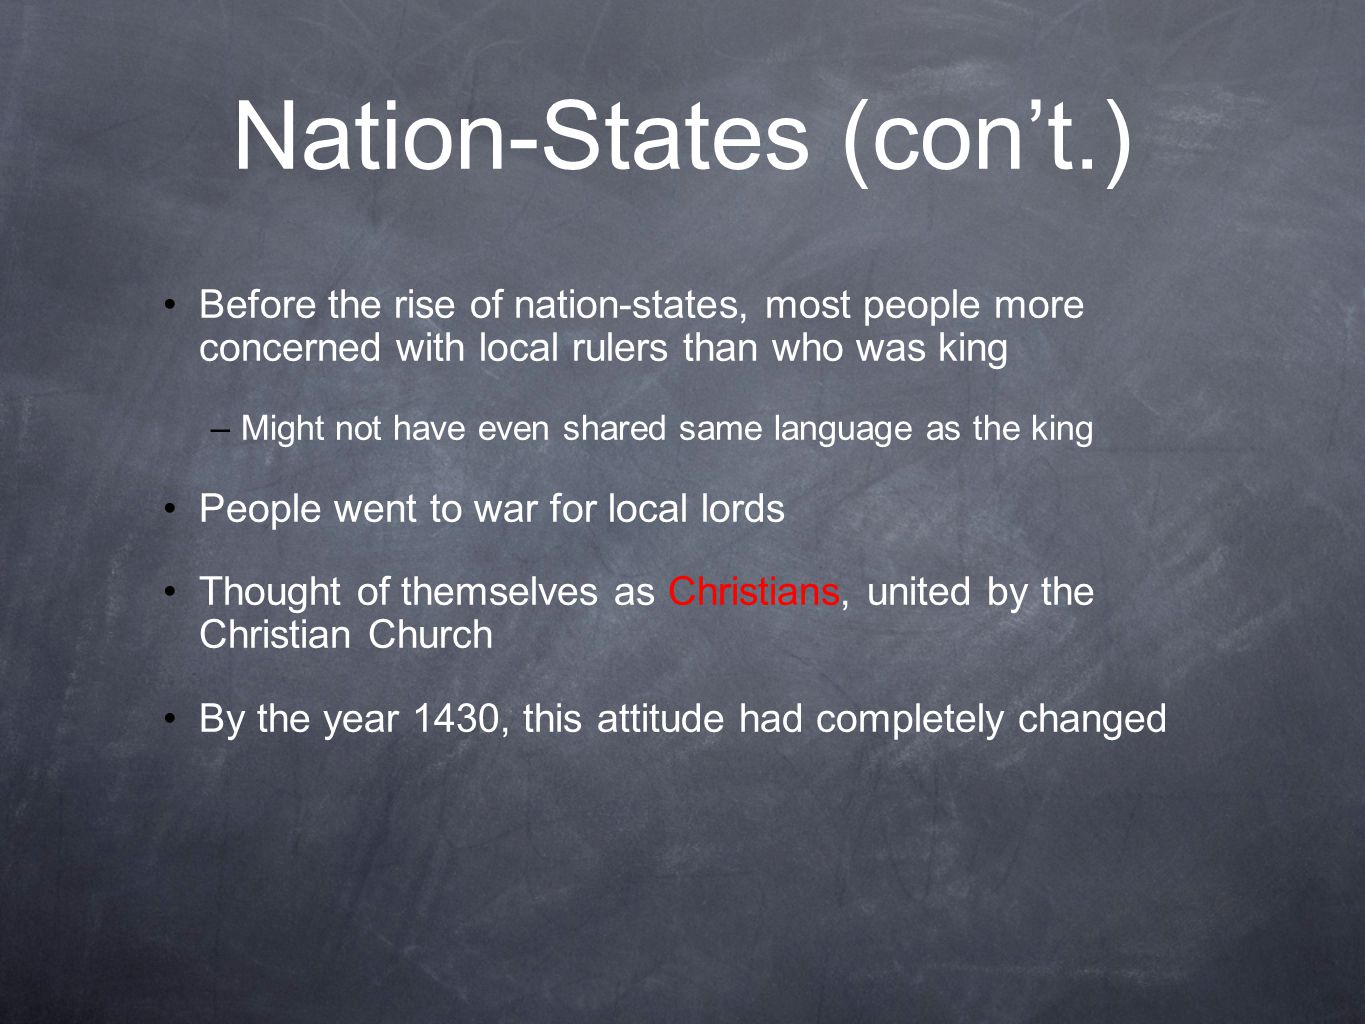 Nation-States (con't.)